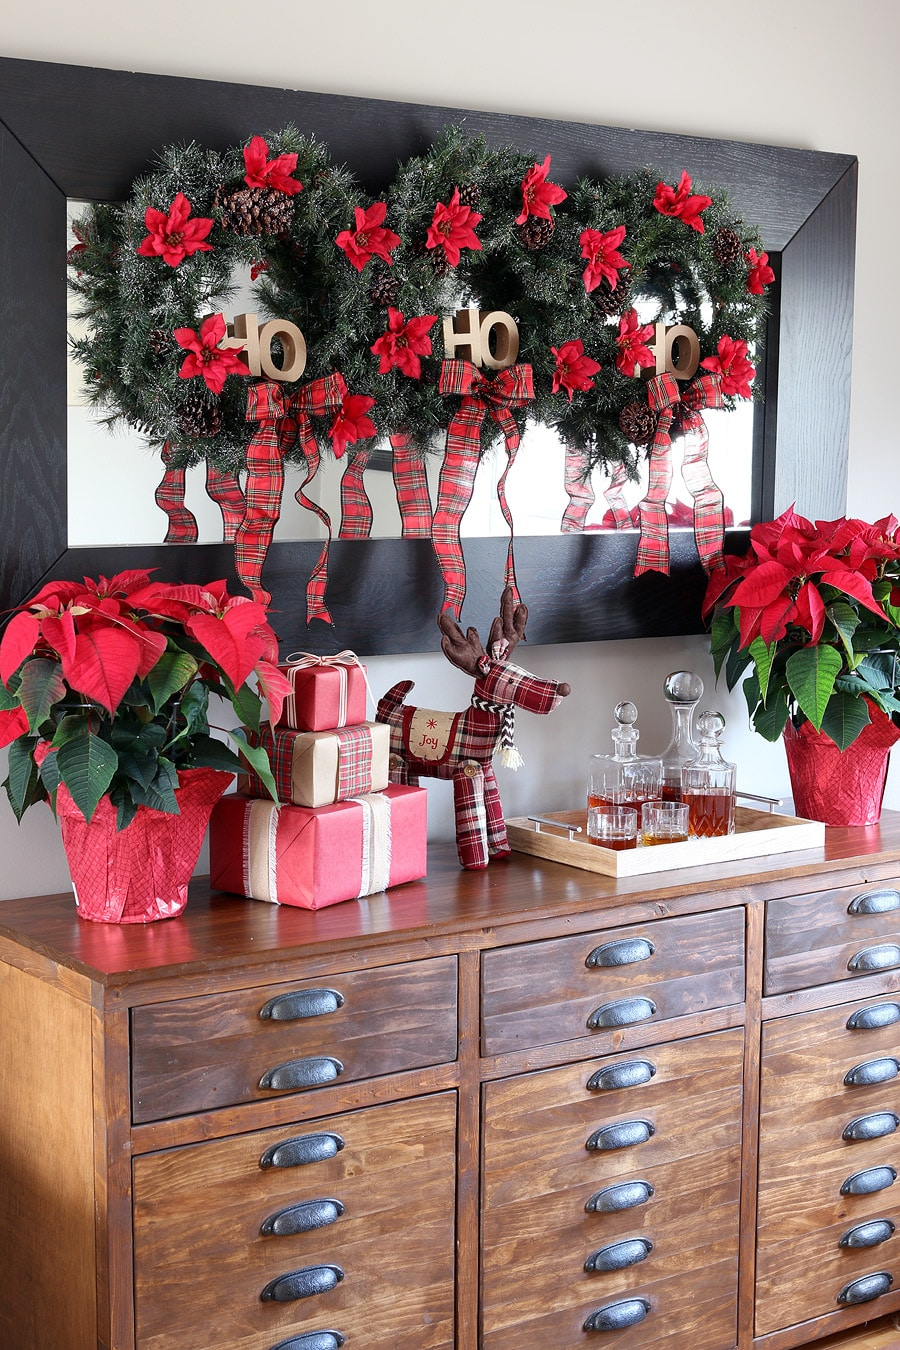 Join us for the DIY Workshop at The Home Depot and make this holiday wreath trio!